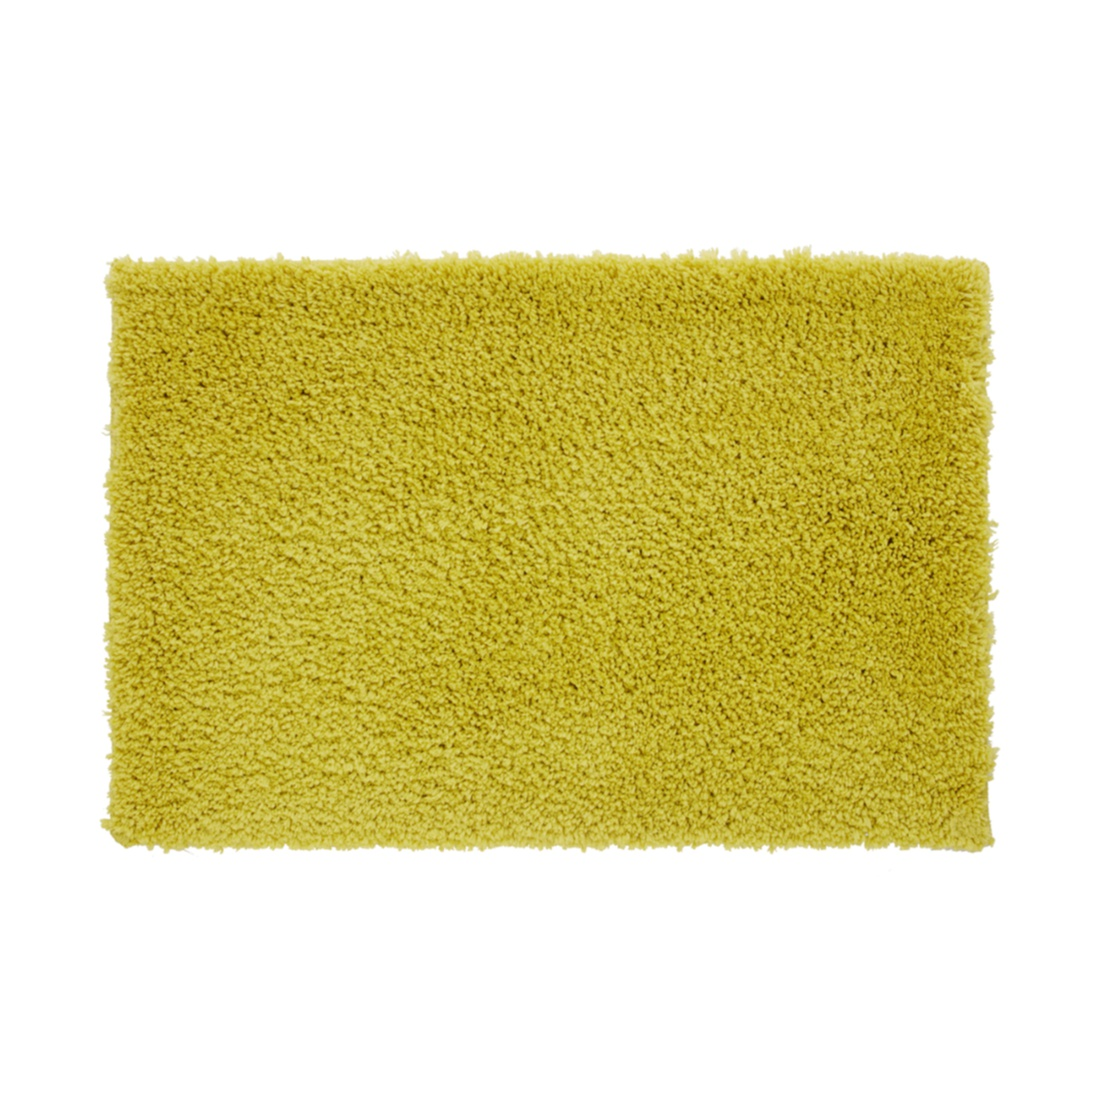 Nora Bath Mat 100% Micro Fiber 2000 Gsm Zest Micro Fibre Bath Mats in Zest Colour by Living Essence